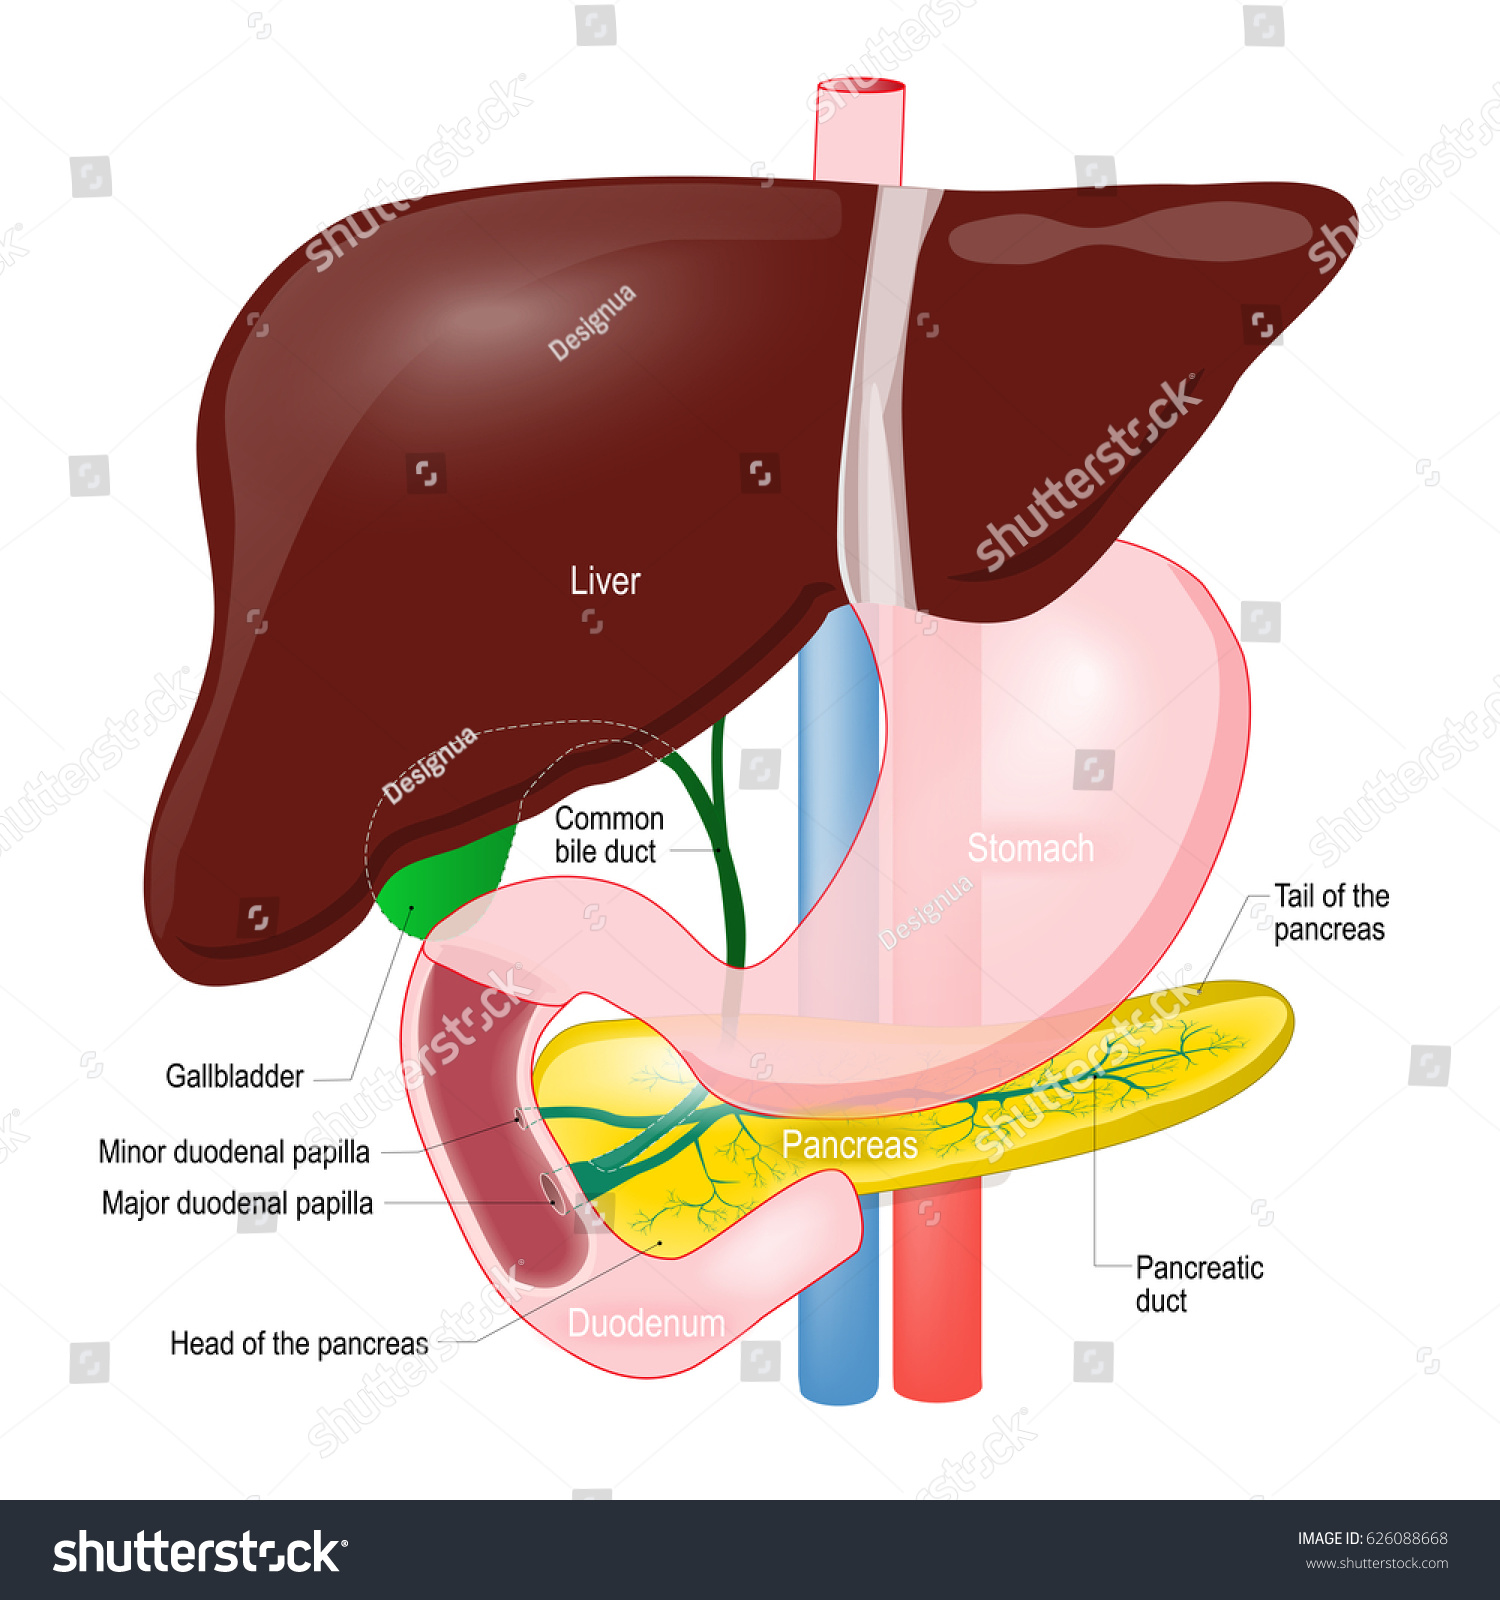 Gallbladder Duct Anatomy Pancreas Liver Duodenum Stock Illustration ...